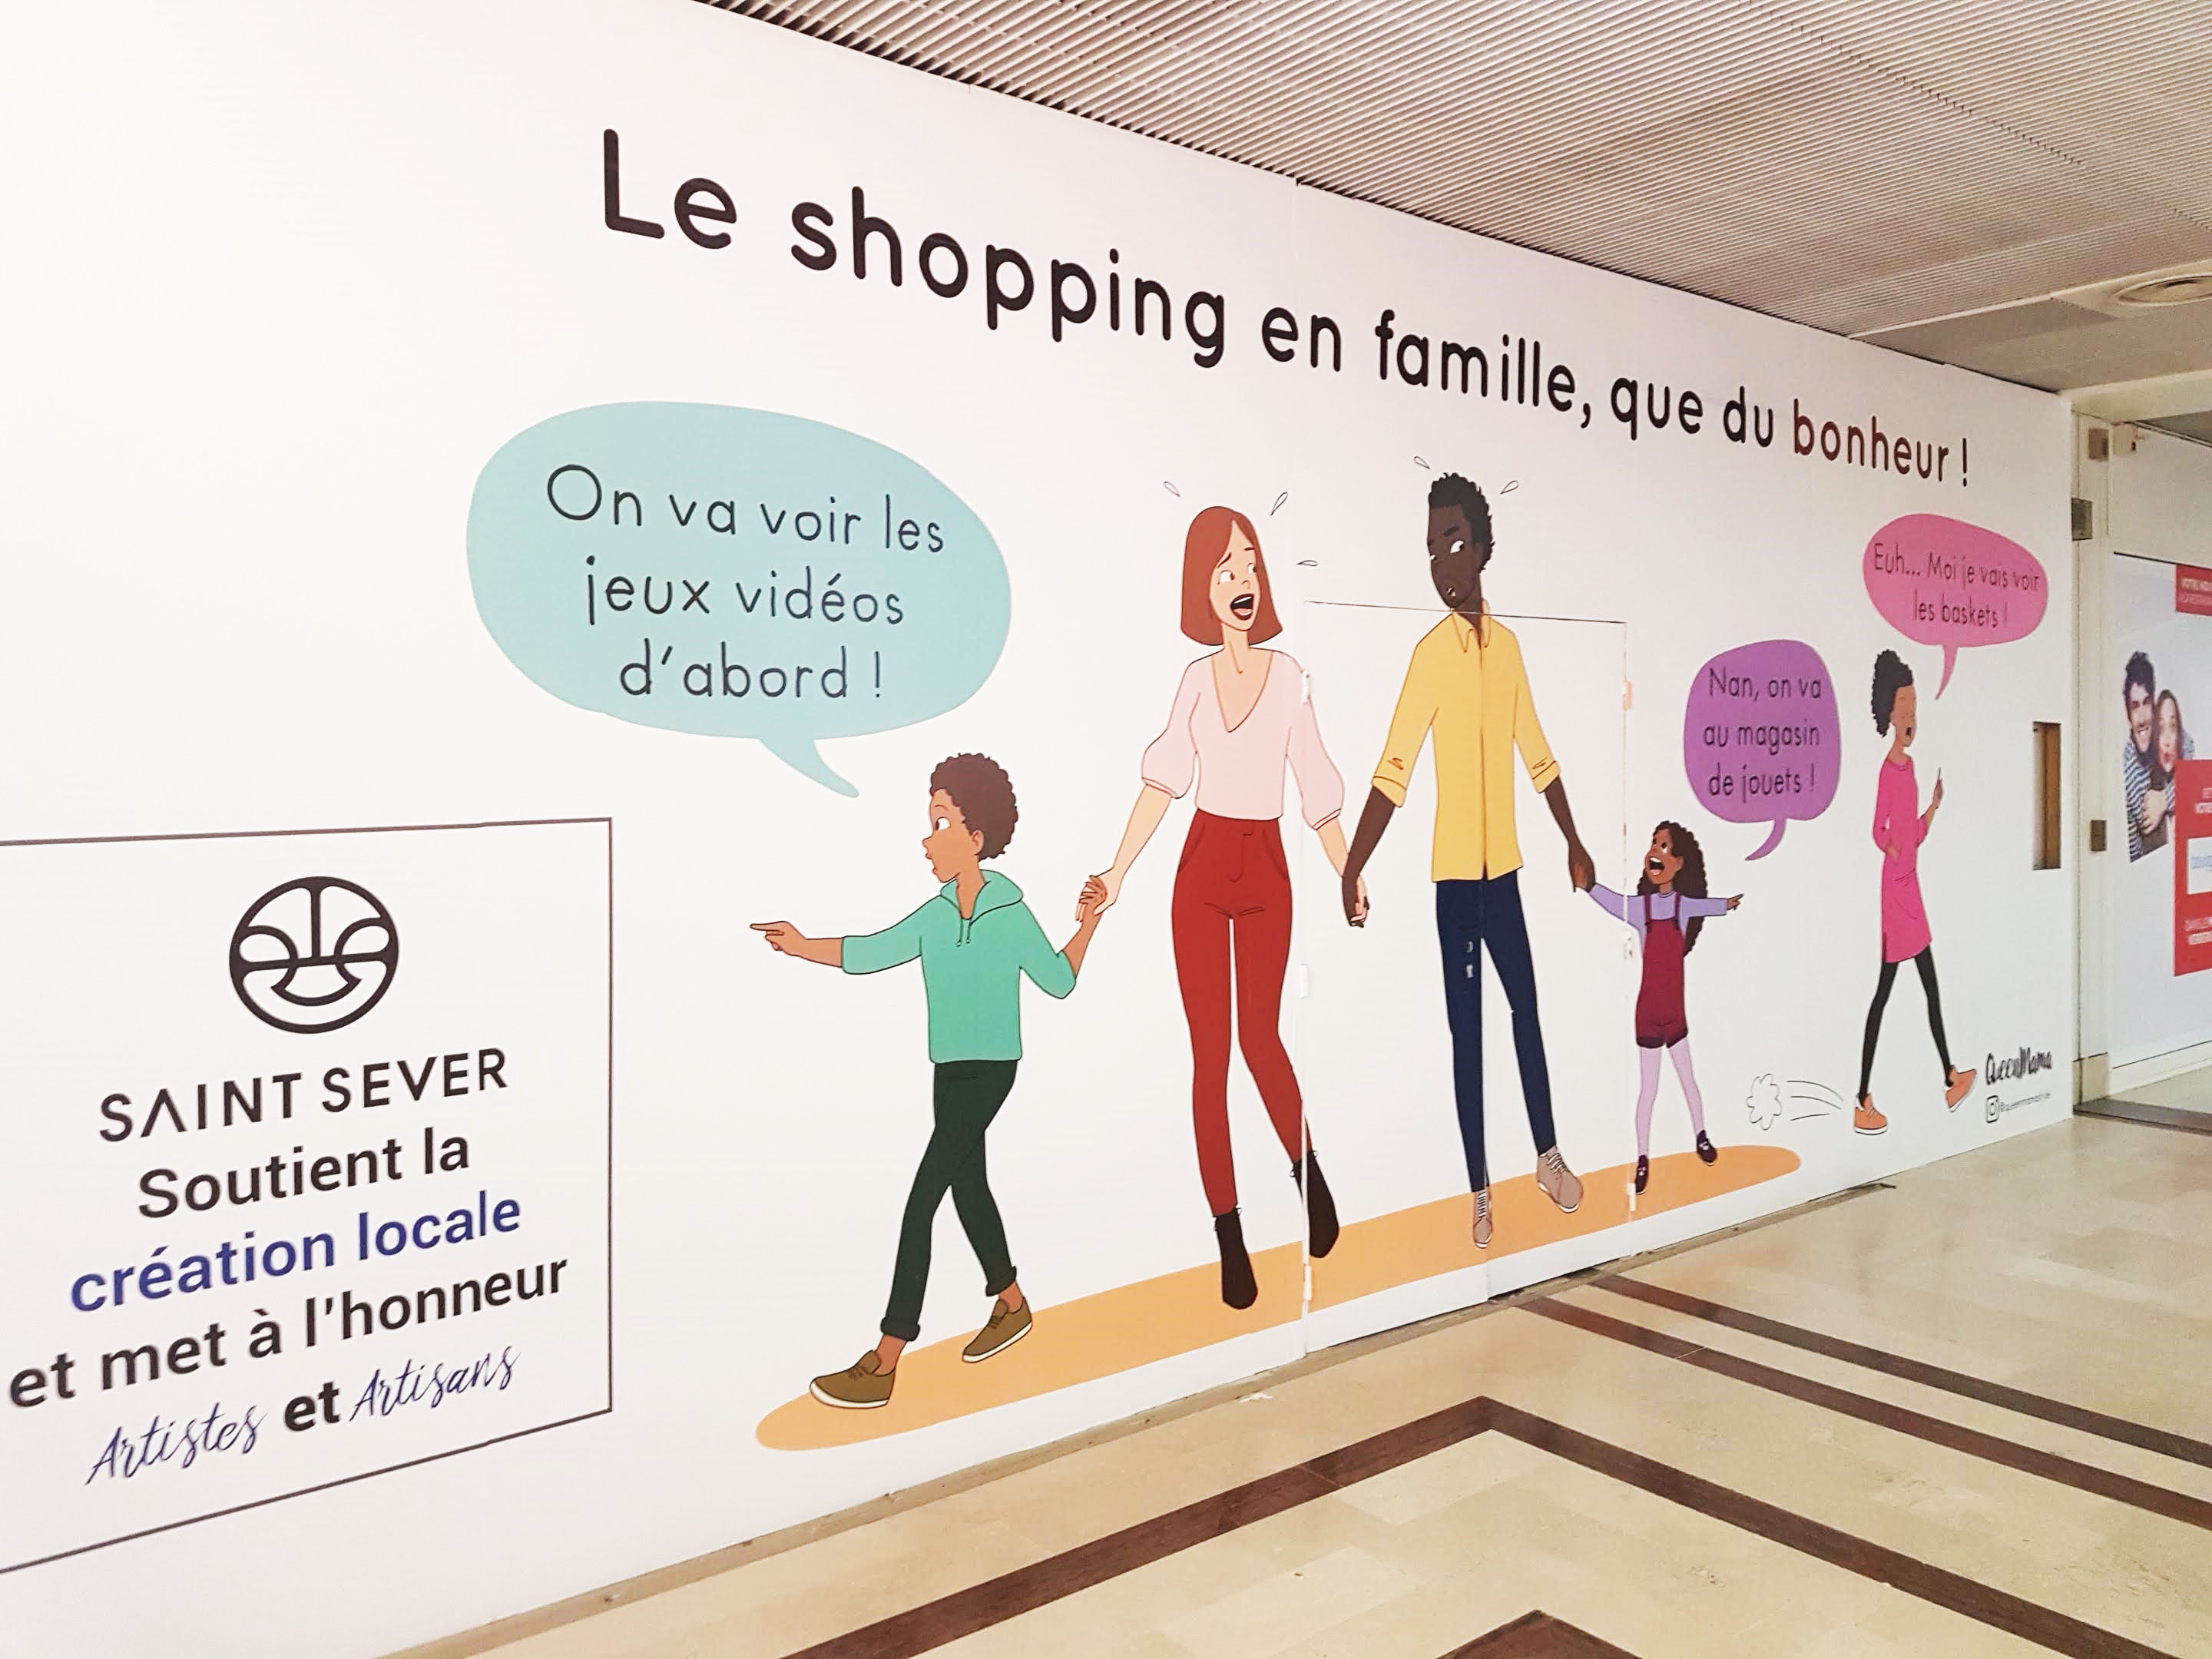 shopping famille rouen saint sever queenmama illustration